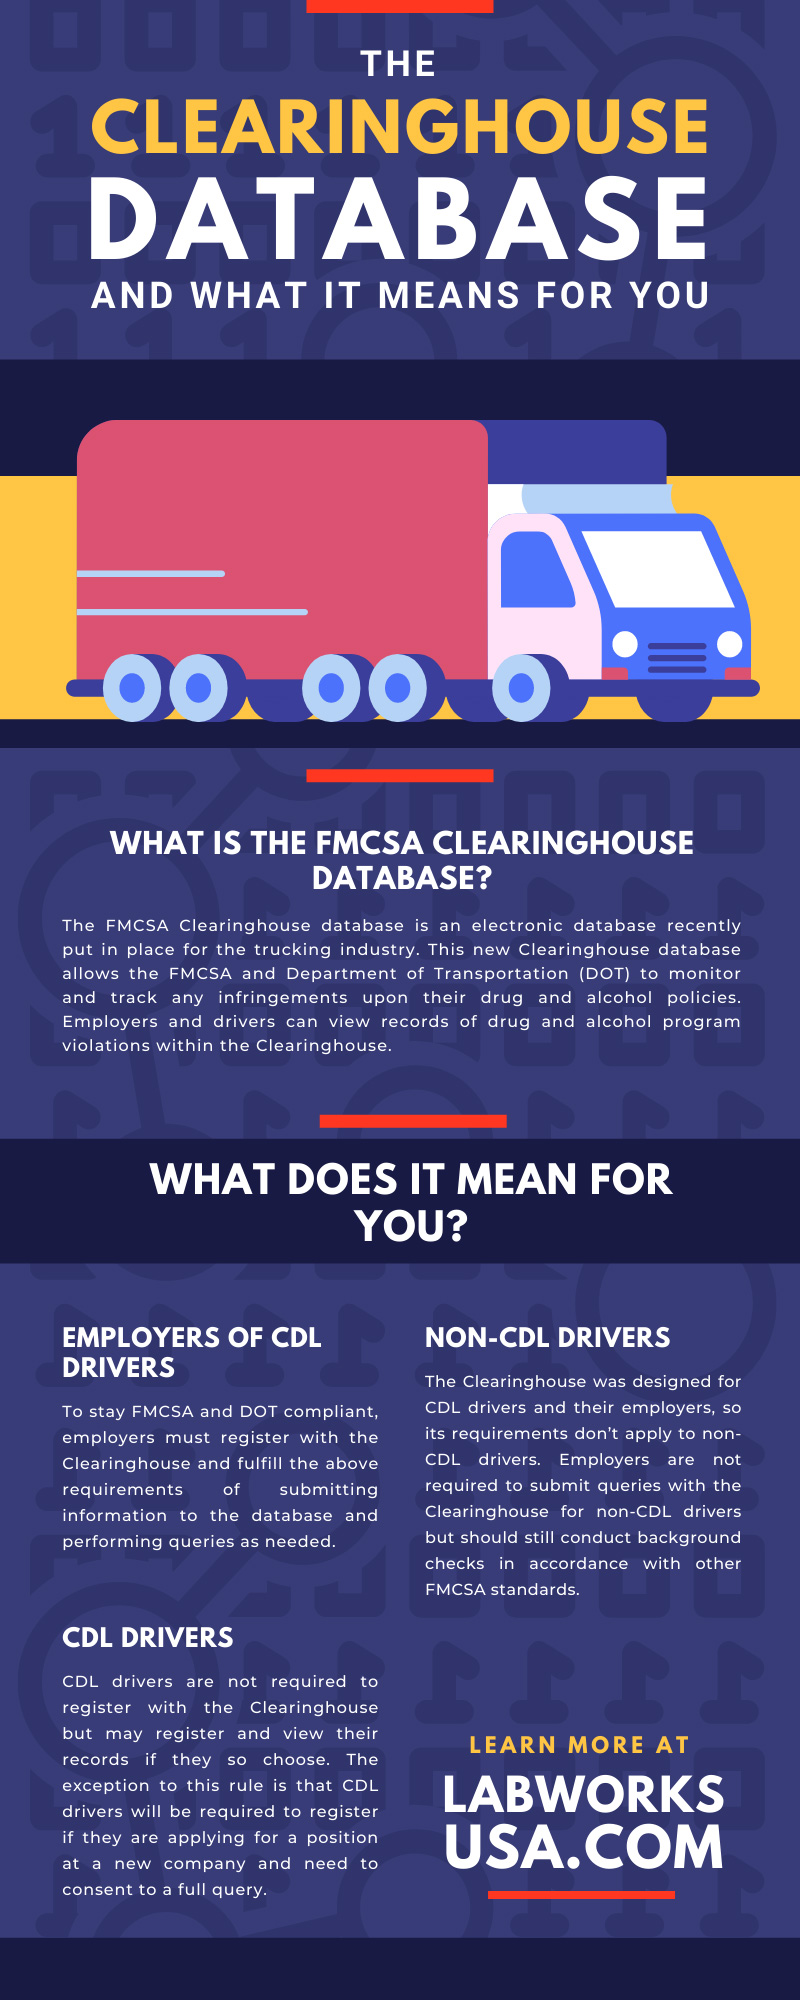 The Clearinghouse Database and What It Means for You